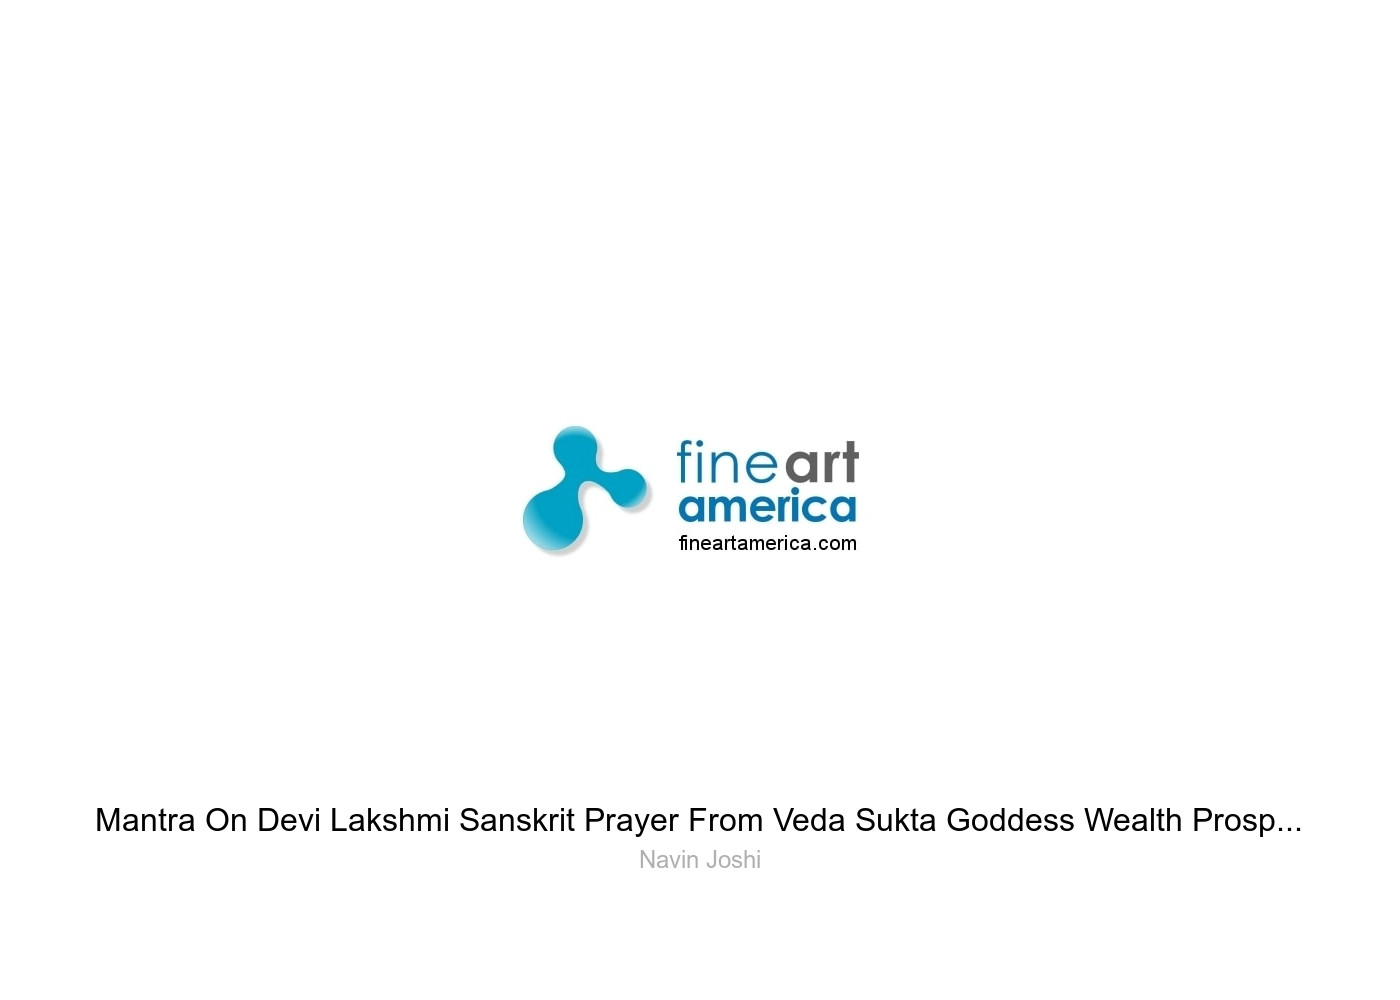 Mantra On Devi Lakshmi Sanskrit Prayer From Veda Sukta Goddess Wealth  Prosperiity Greeting Card